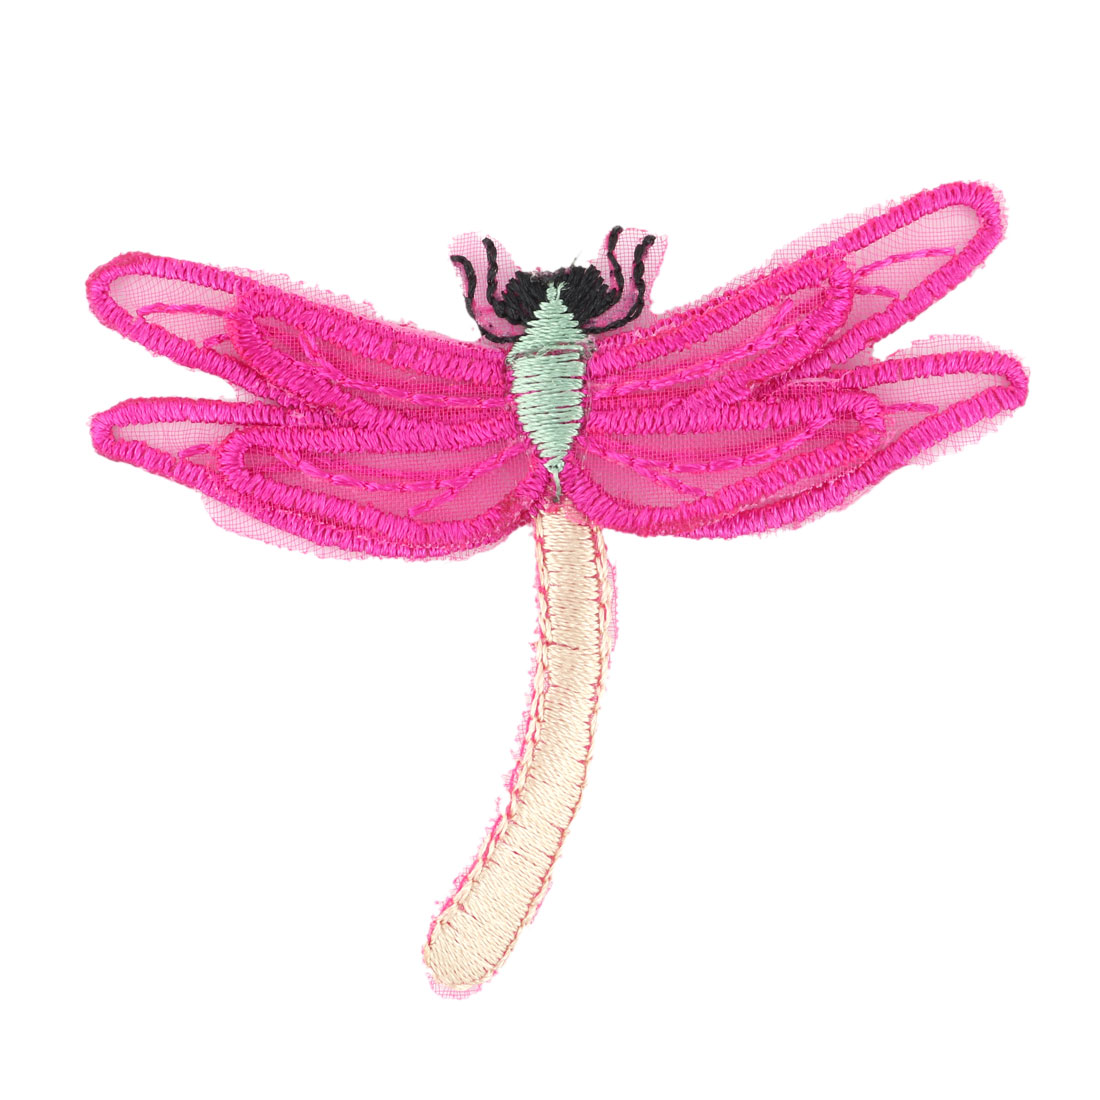 Unique Bargains Organza Dragonfly Design Embroidered DIY Clothes Decor Lace Applique Fuchsia